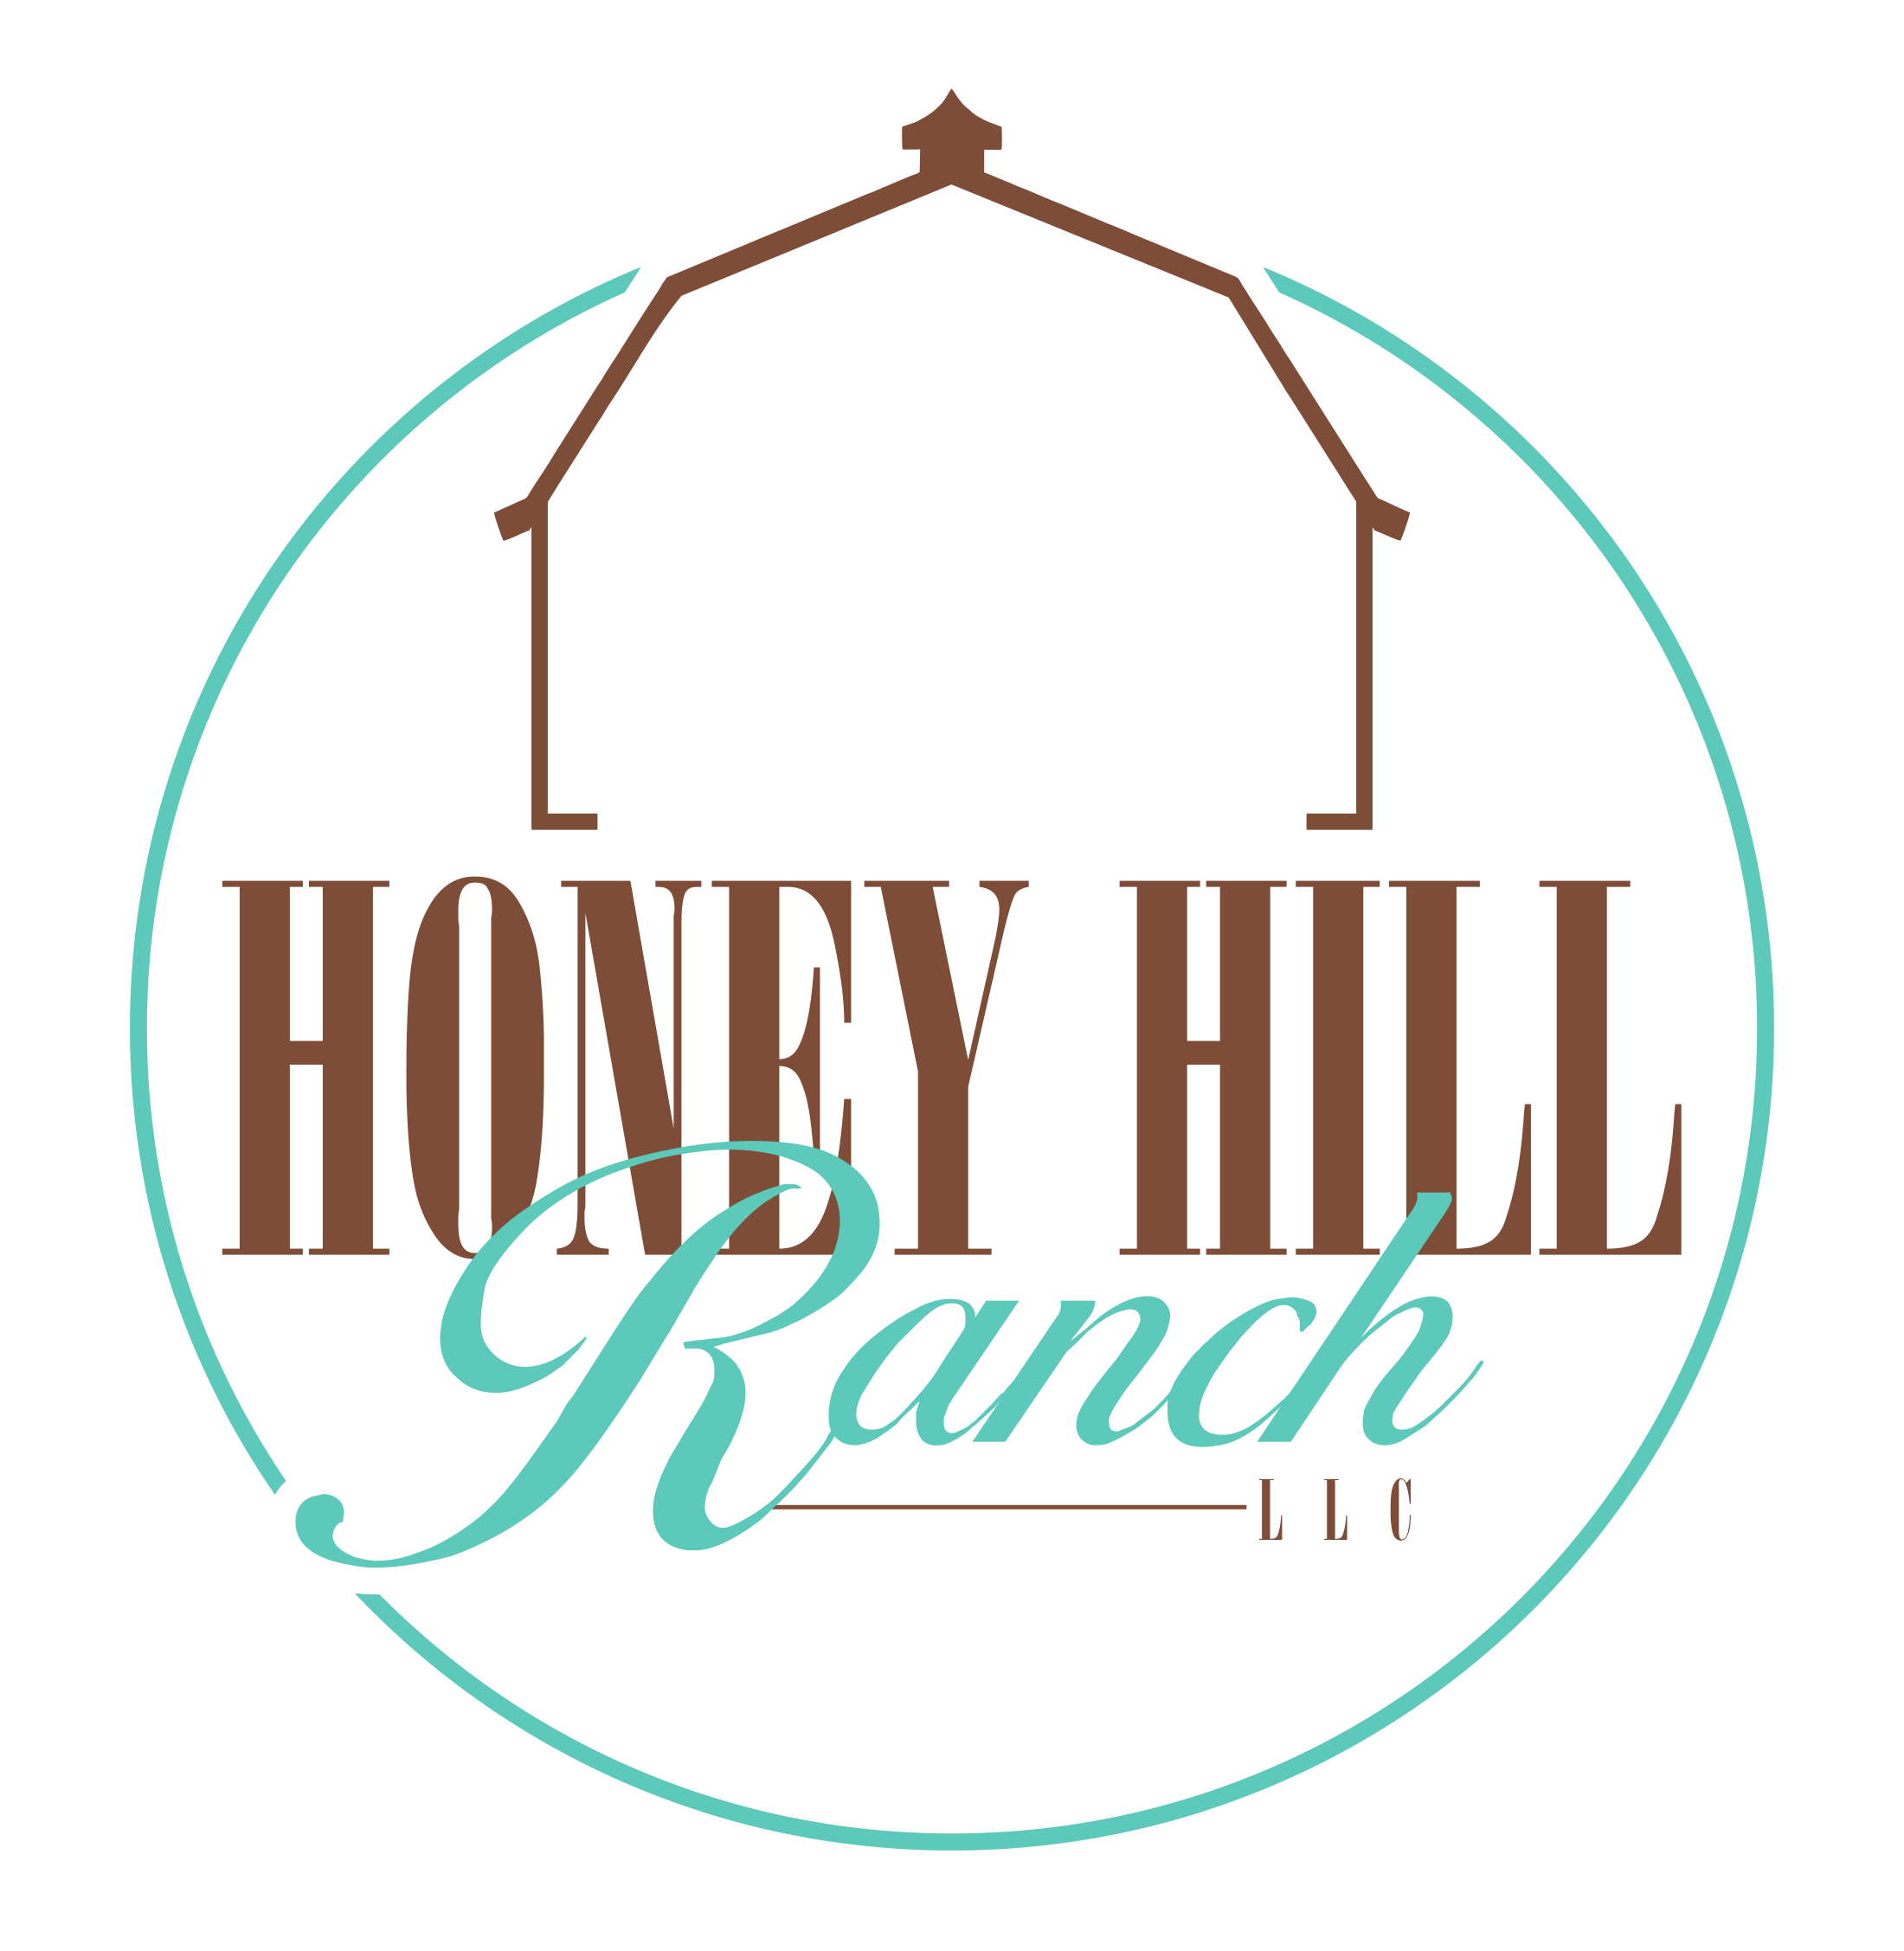 Honey Hill Ranch